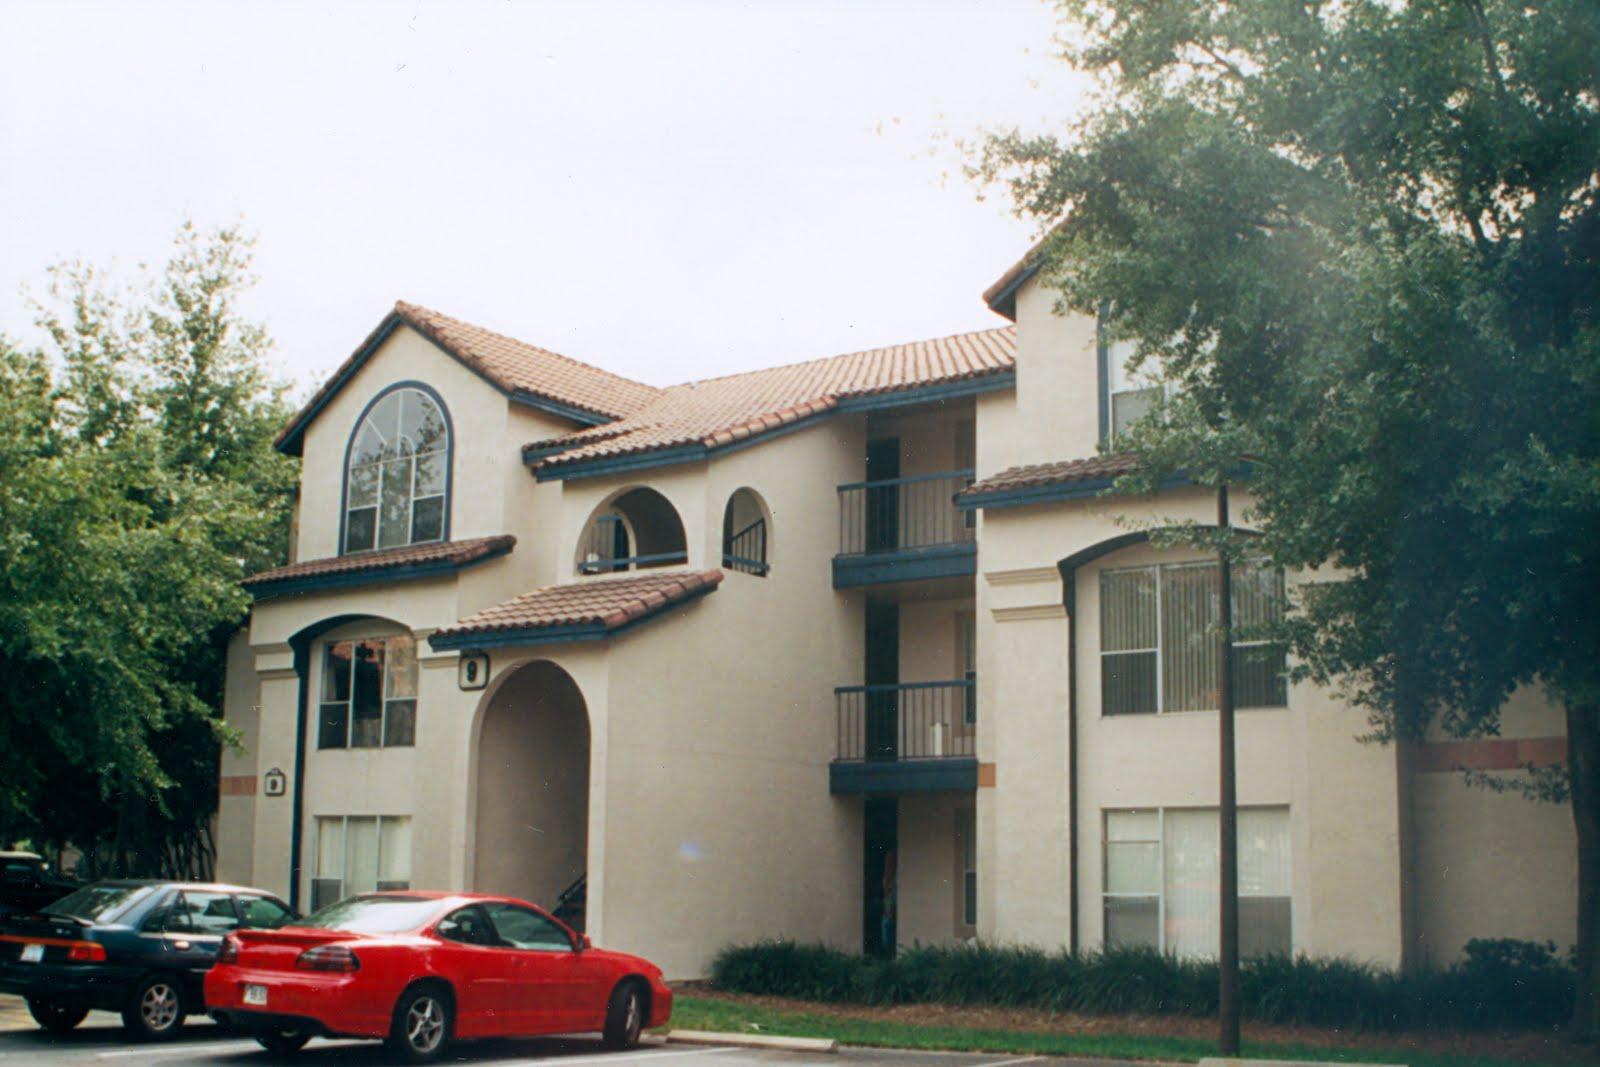 An introduction to Disney housing (and housing myths ...